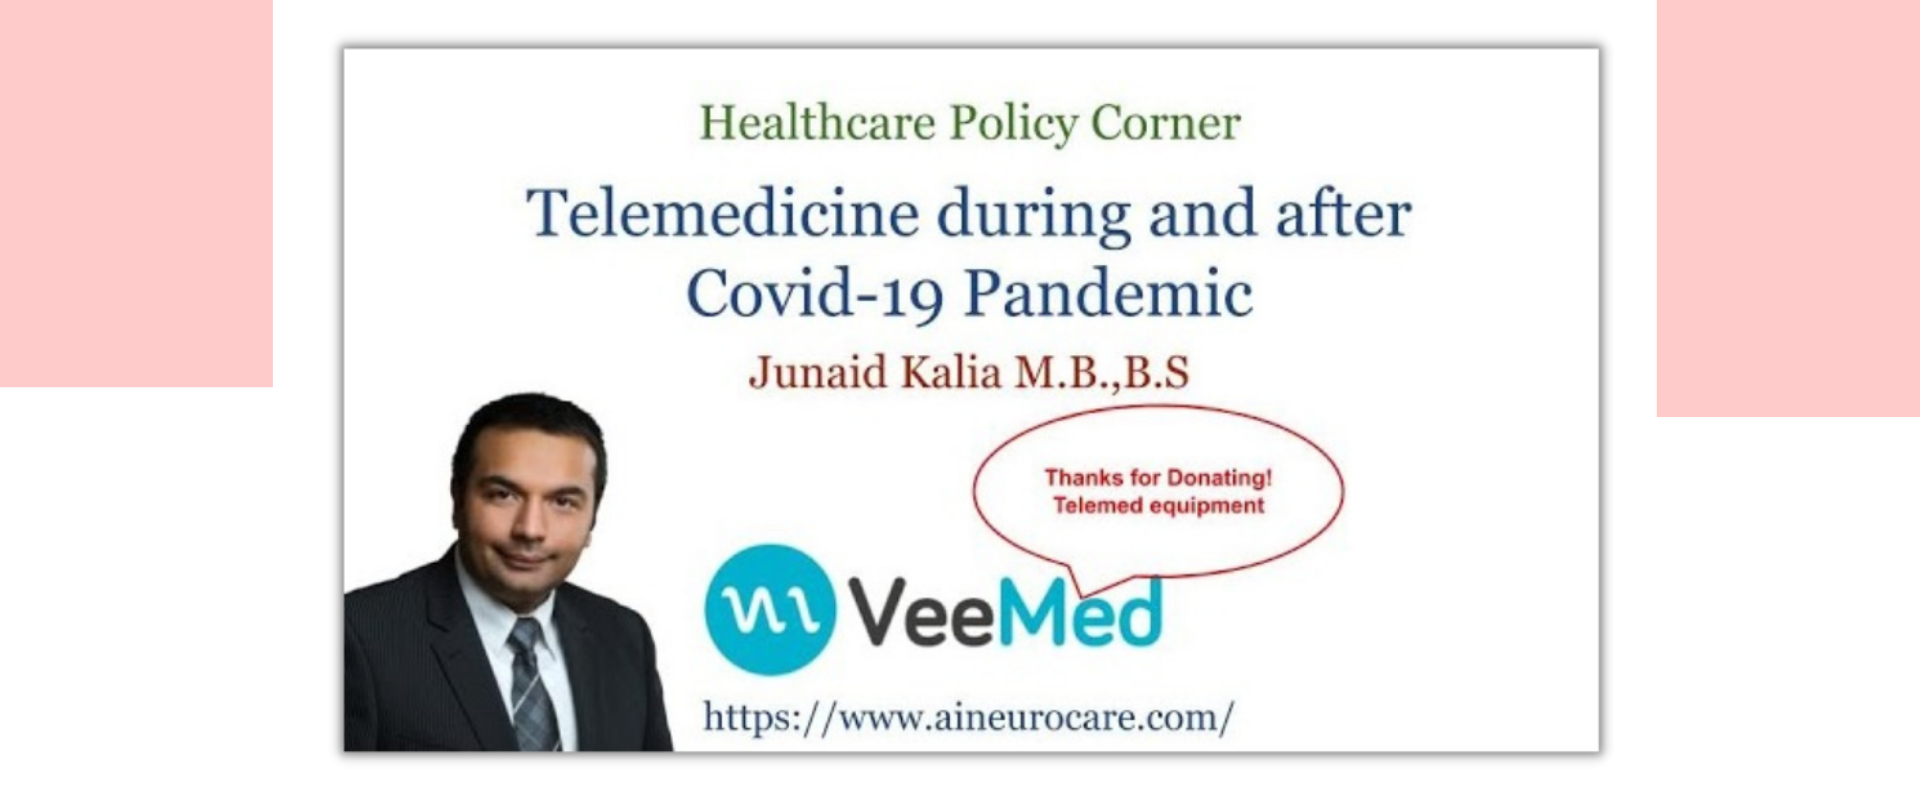 Telemedicine during and after Covid-19 Pandemic